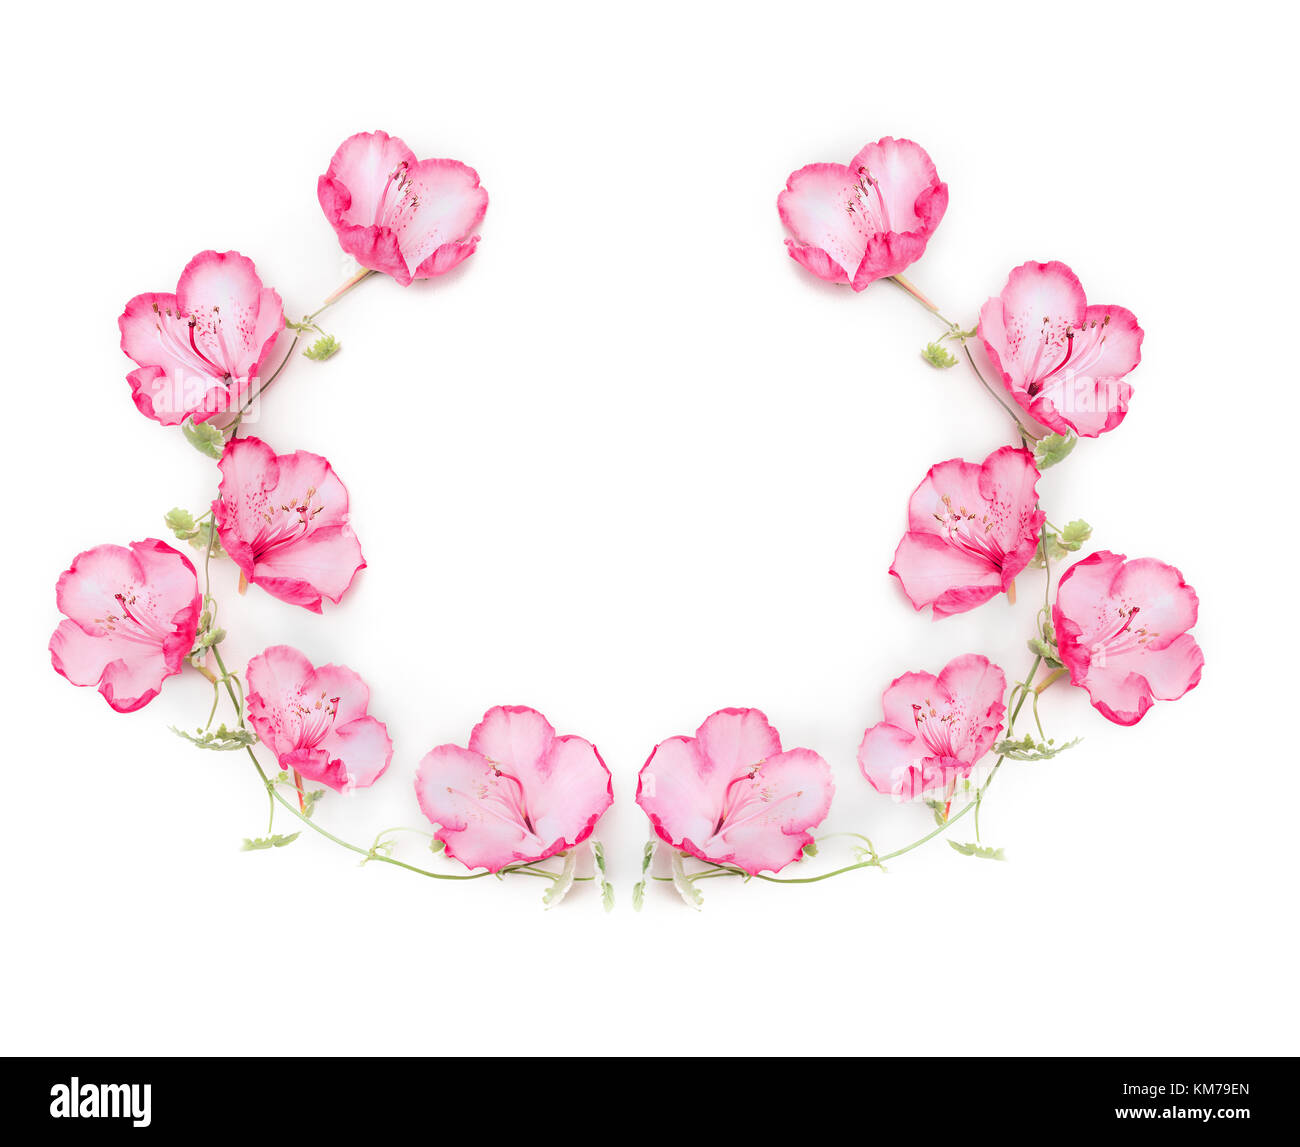 Floral Wreath With Pink Flowers On White Background Top View Stock